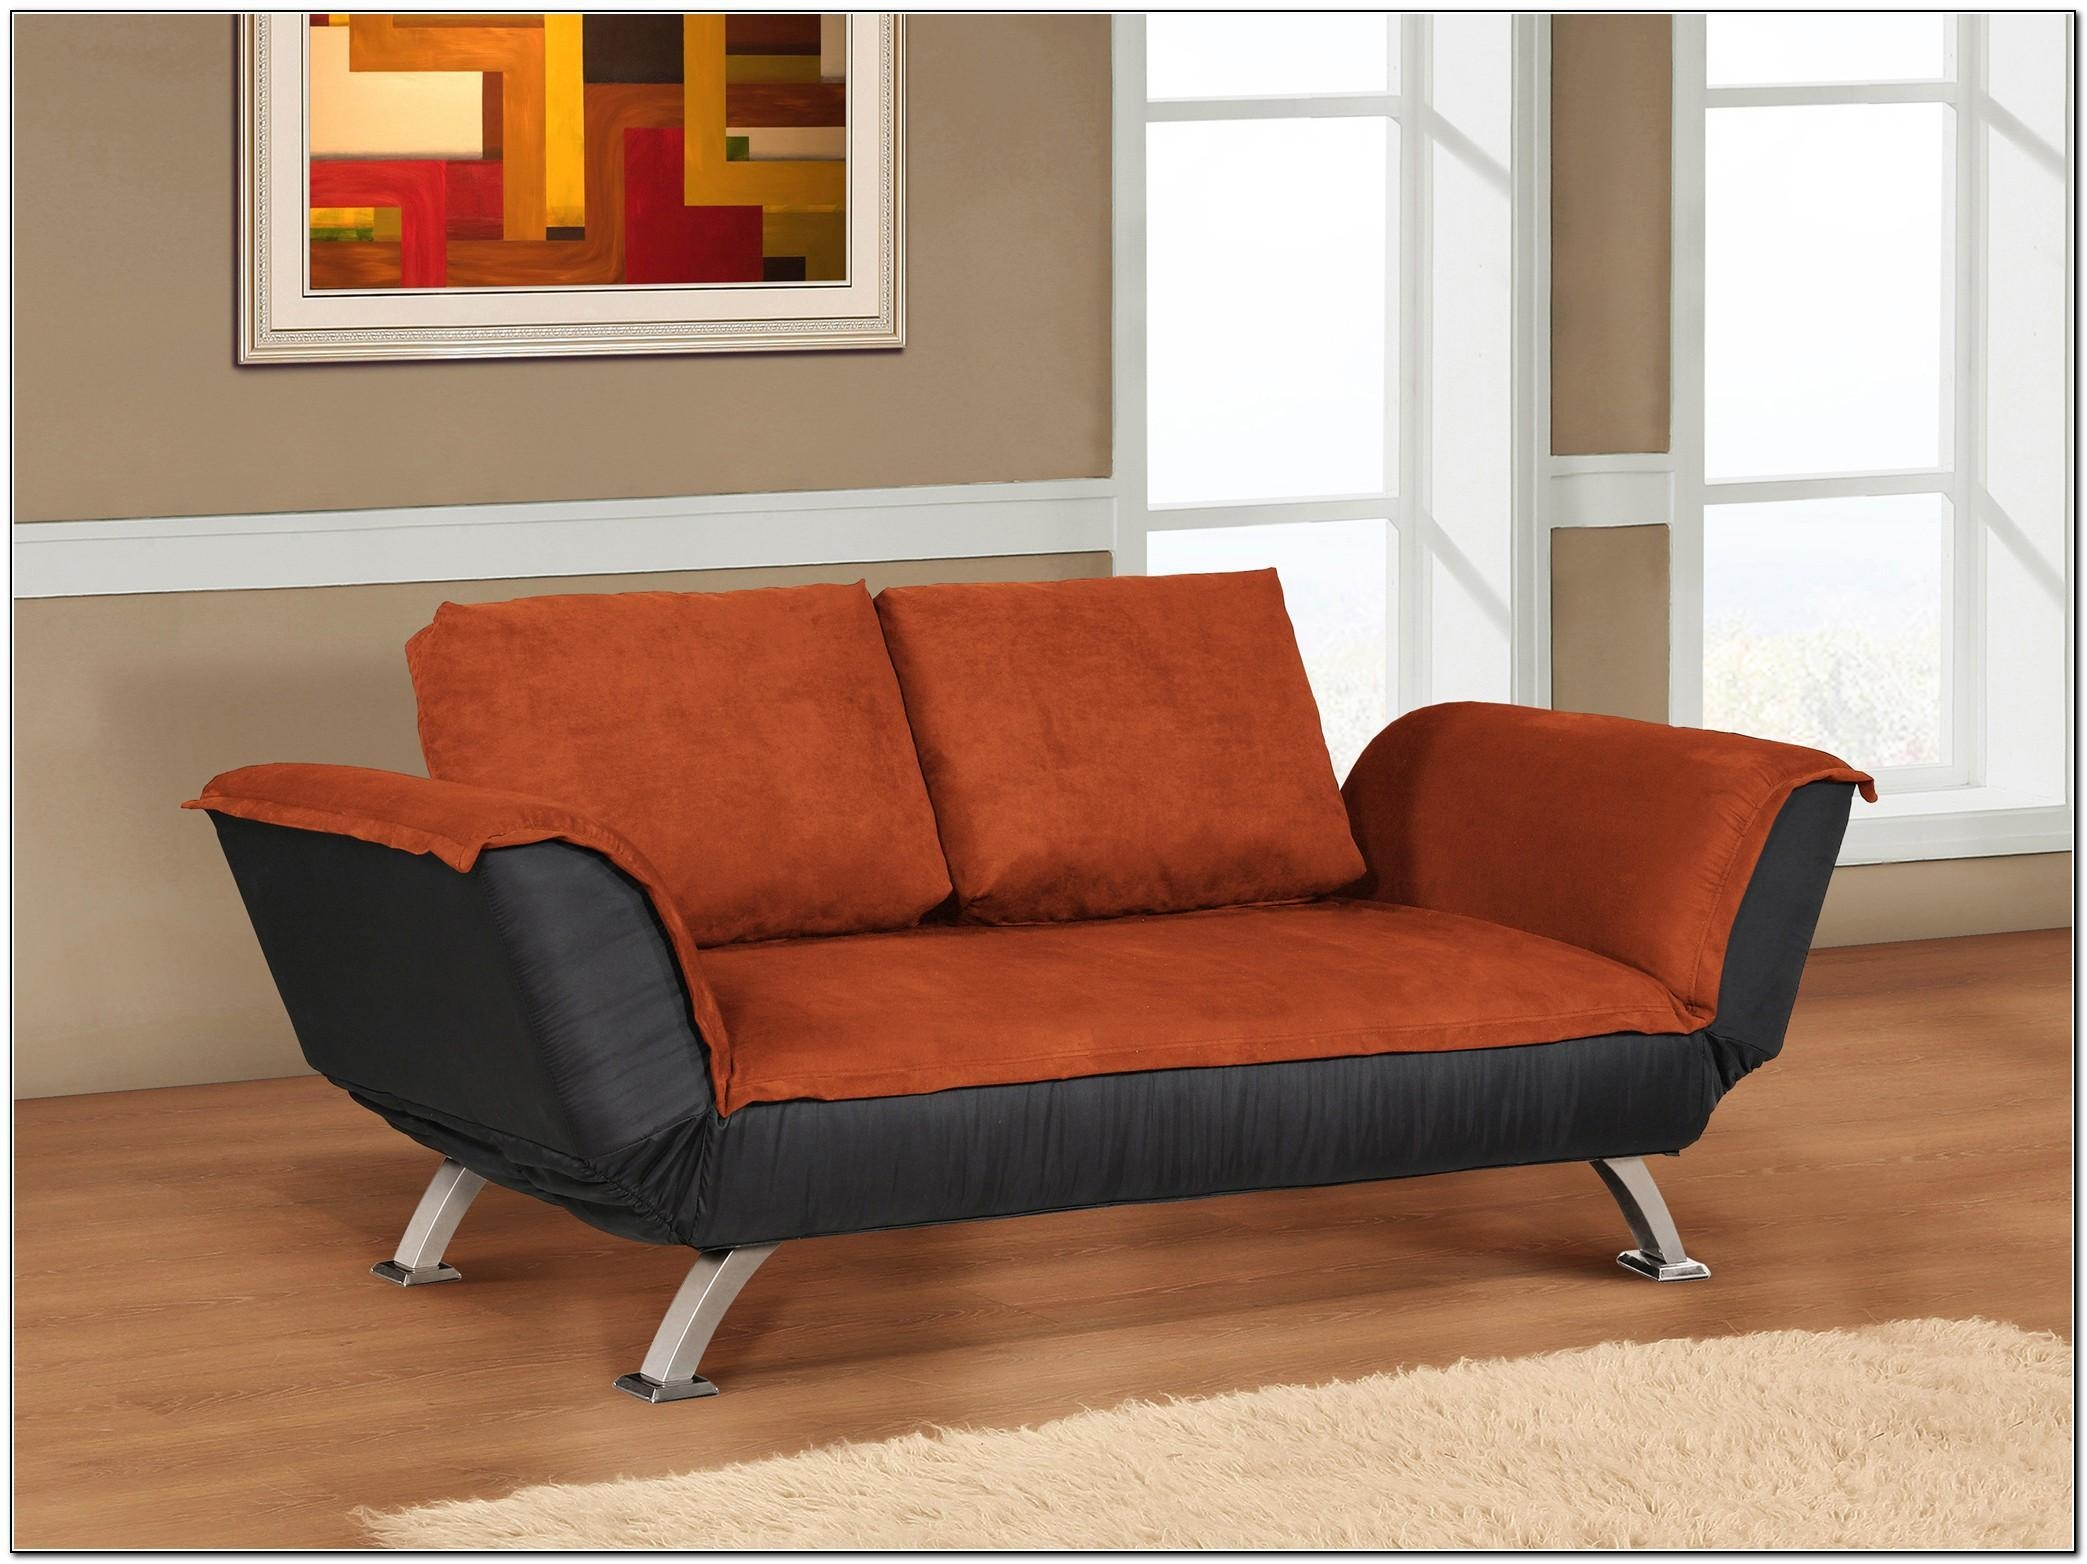 Unique Castro Convertible Sofa Bed 57 For Your Sofas And Couches inside Castro Convertibles Sofa Beds